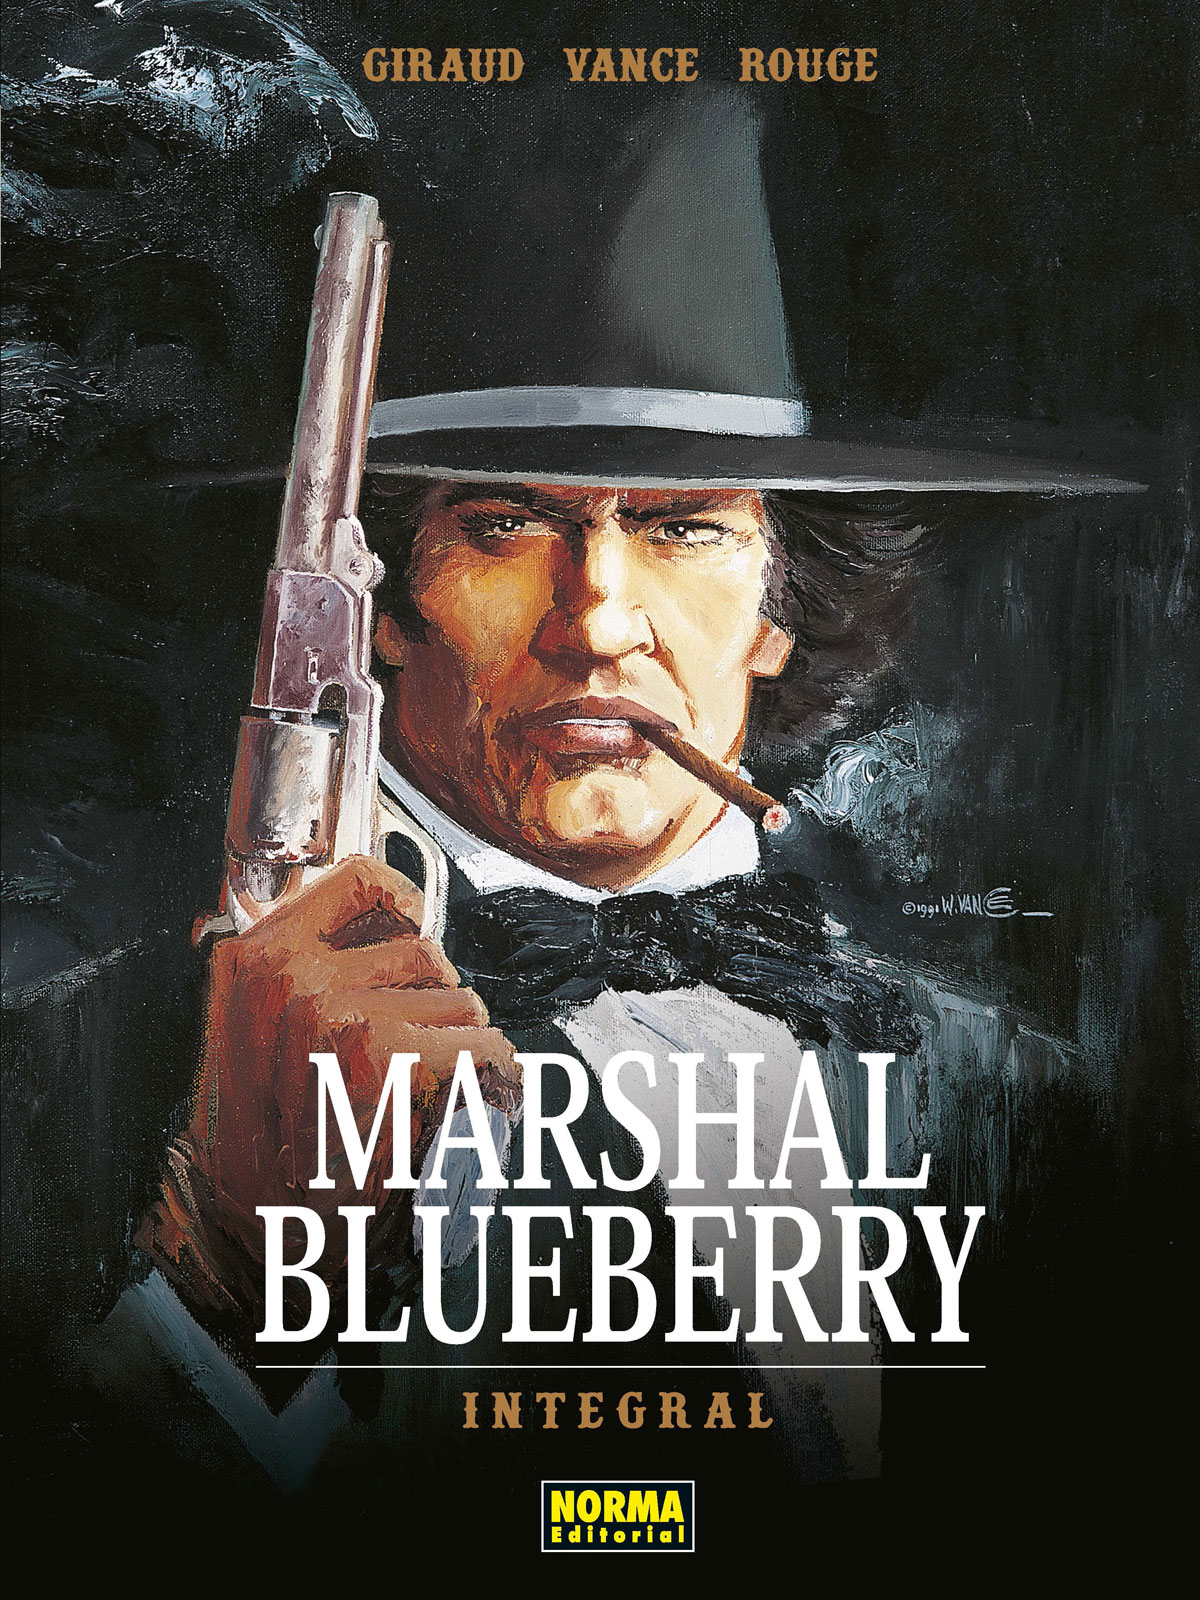 Marshal Blueberry. Edición Integral | N0119-NOR05 | Jean Giraud, William Vance,  Michel Rouge | Terra de Còmic - Tu tienda de cómics online especializada en cómics, manga y merchandising